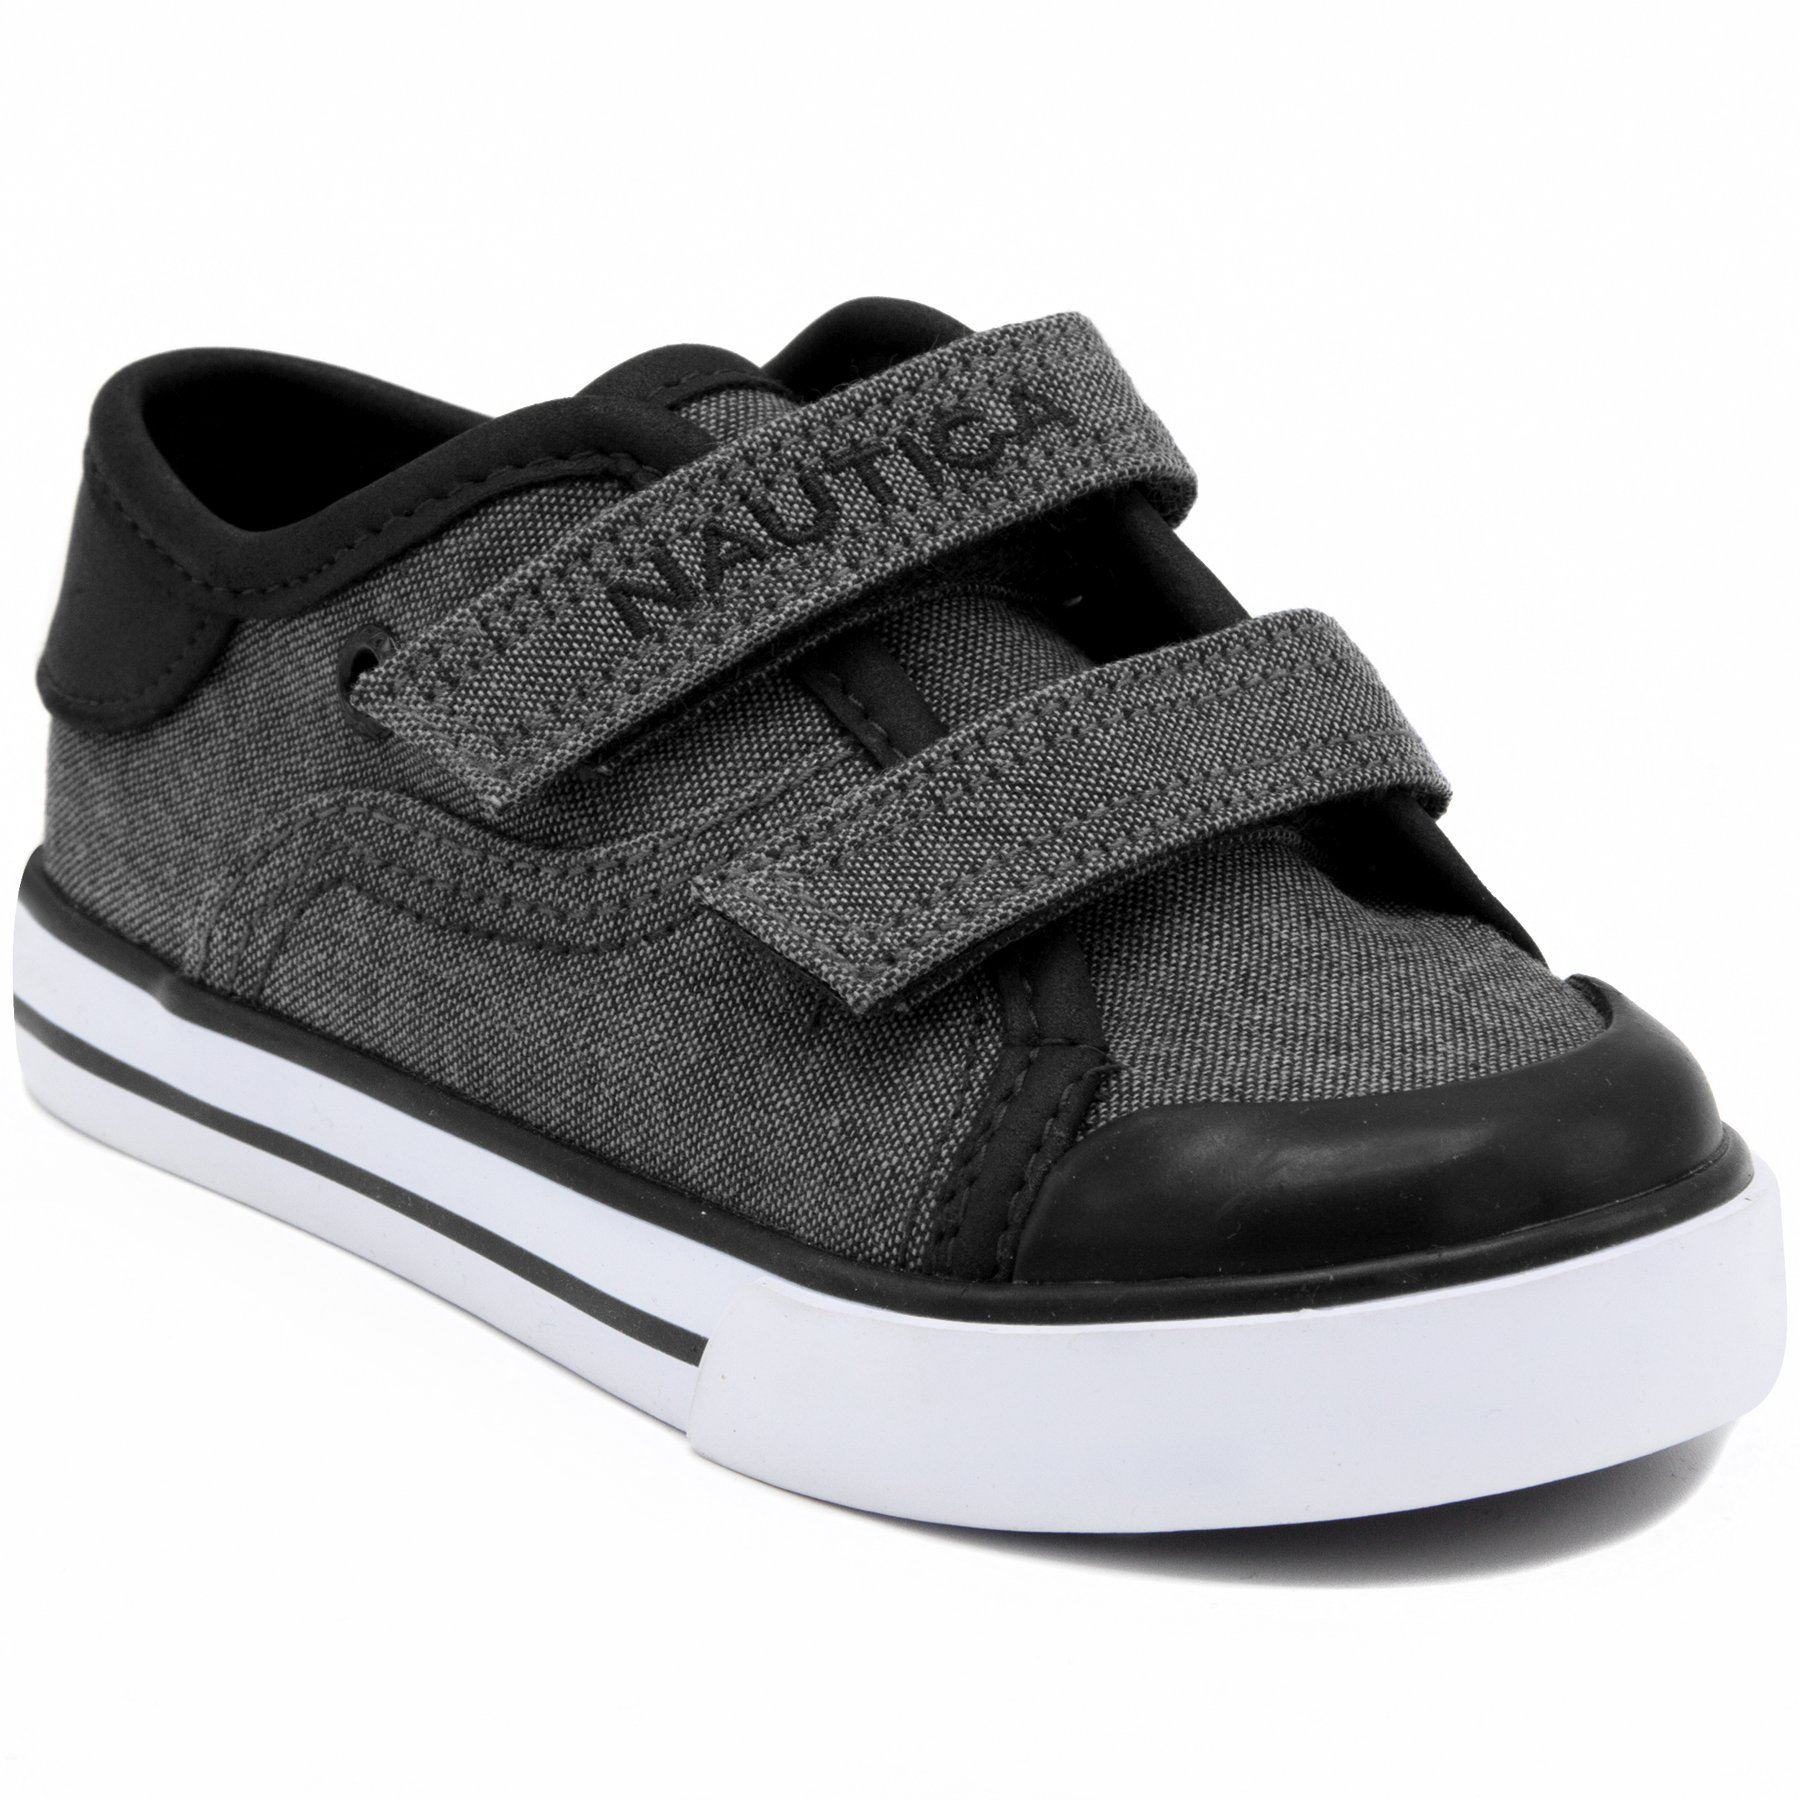 Nautica Boys' Bobstay Slip-on, Black Mix, 9 M US Toddler